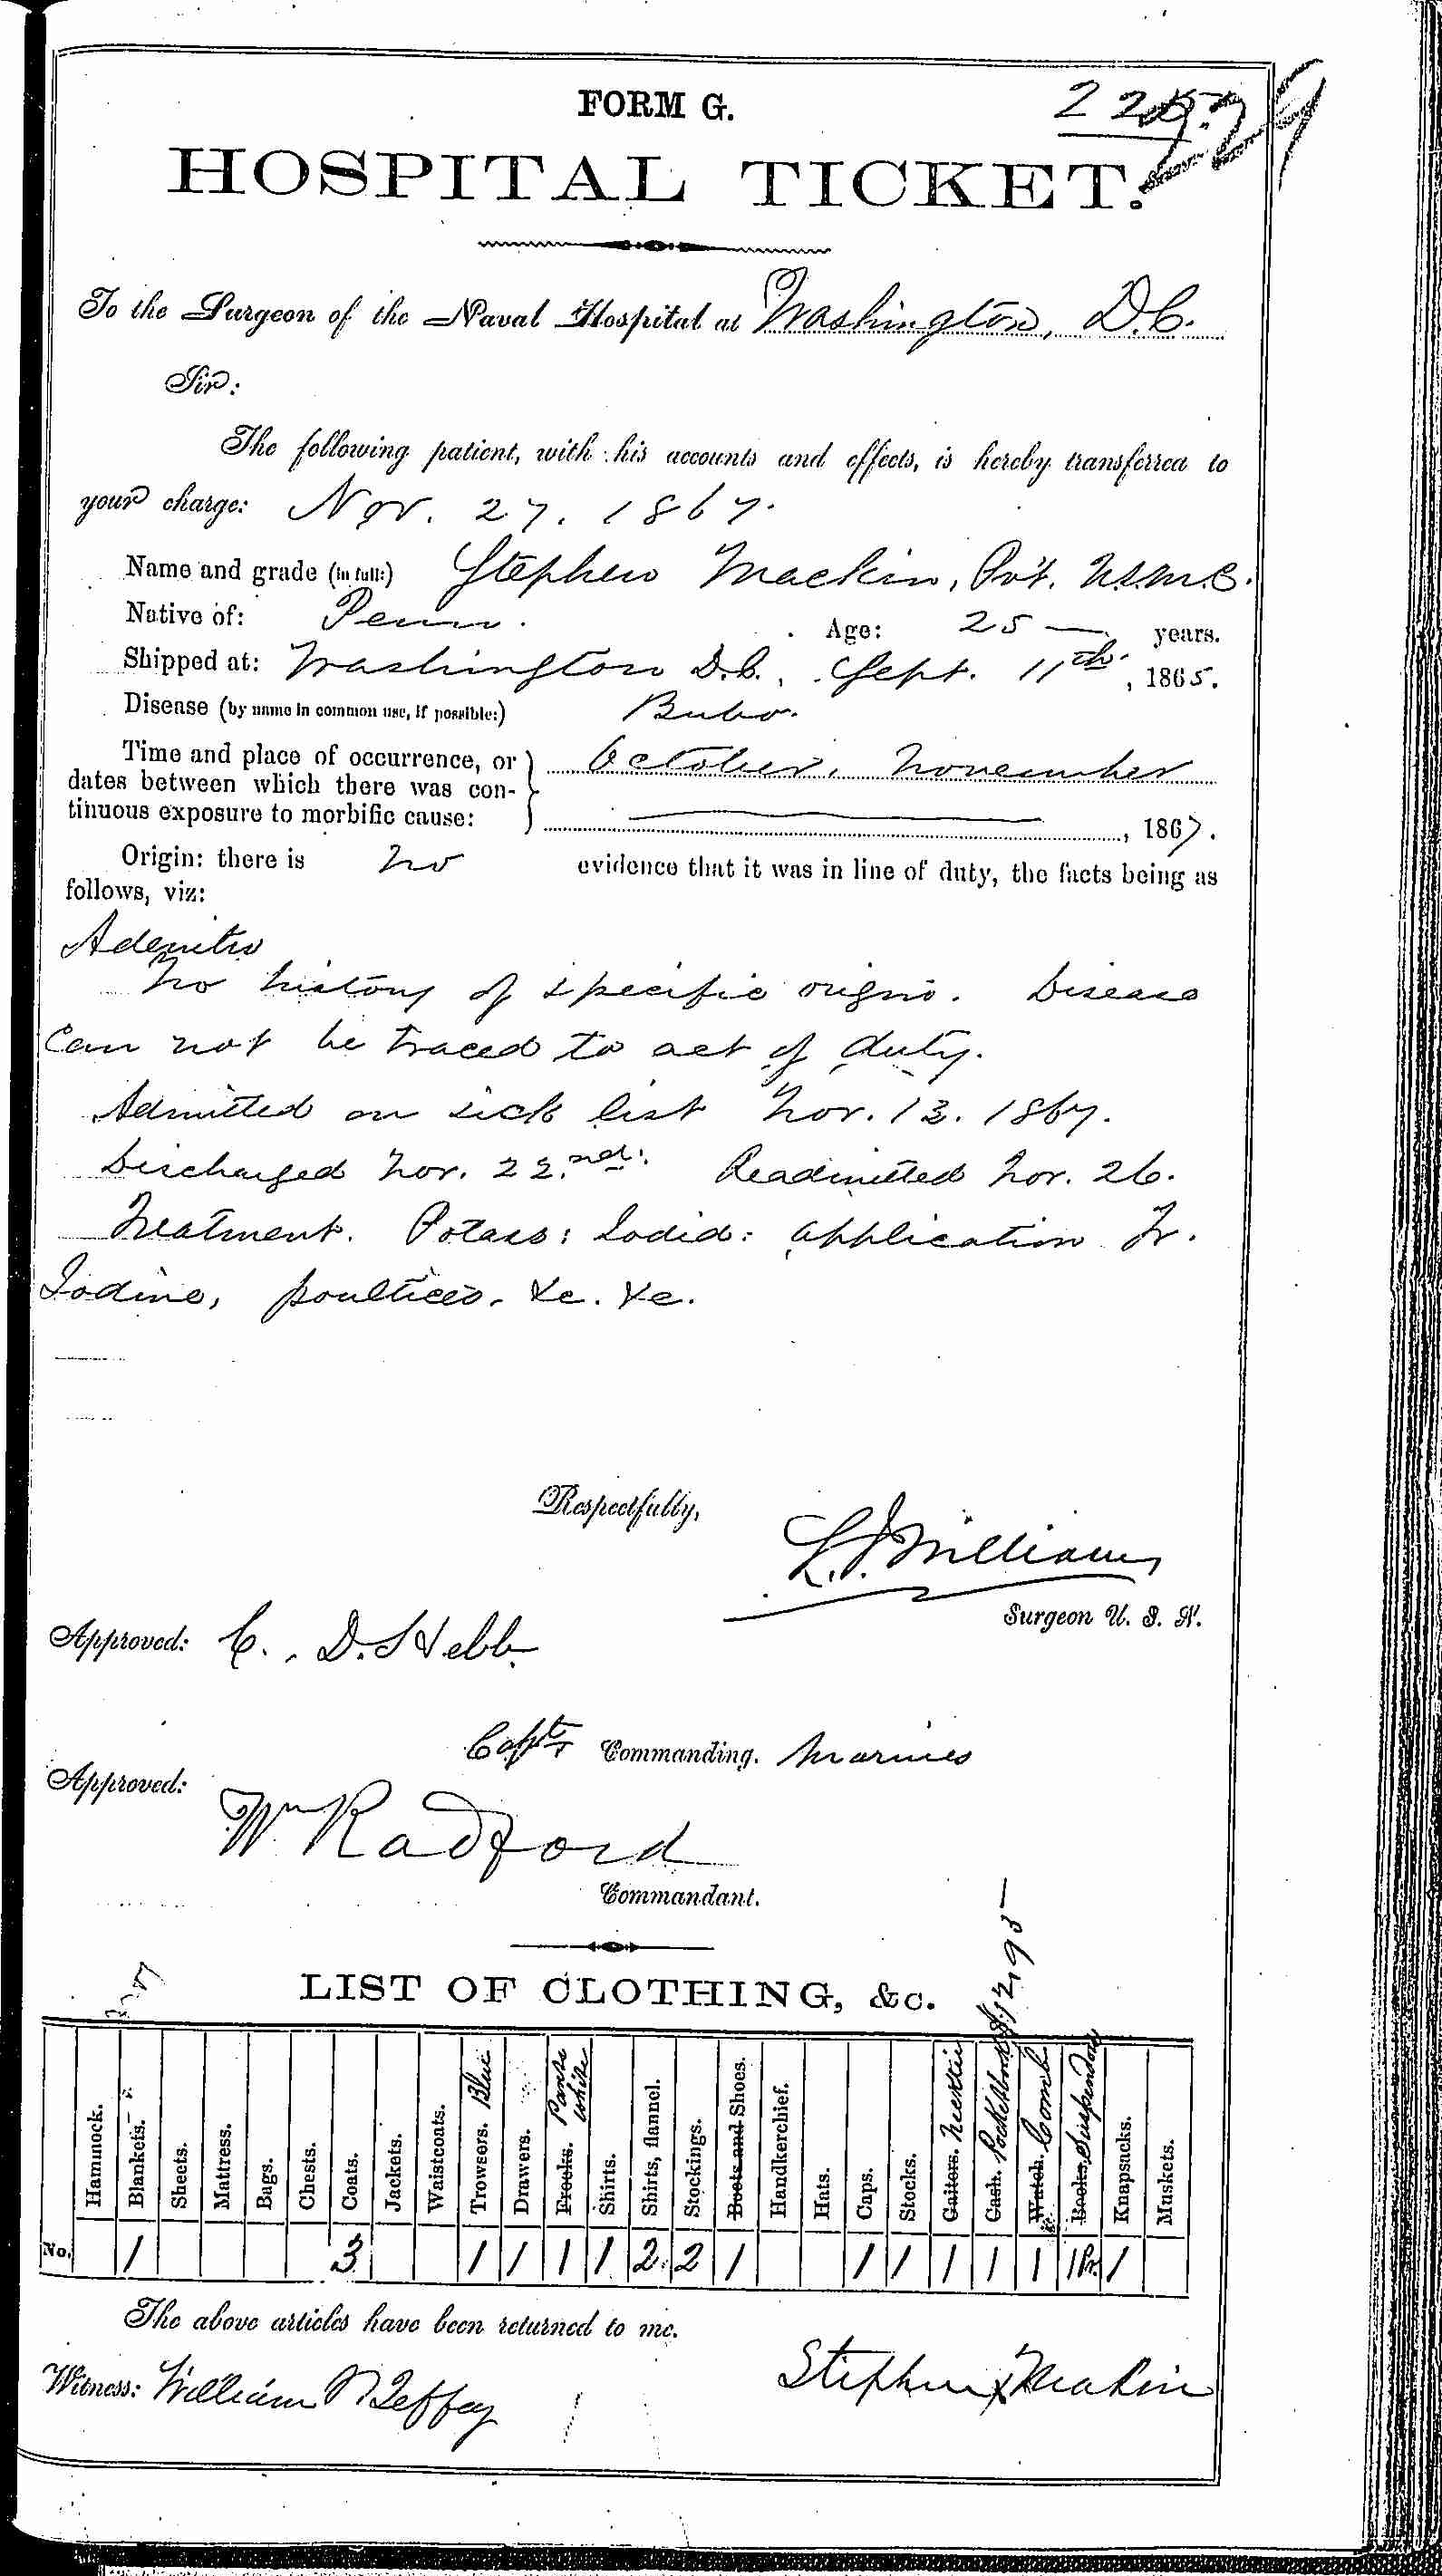 Entry for Stephen Mackin (page 1 of 2) in the log Hospital Tickets and Case Papers - Naval Hospital - Washington, D.C. - 1866-68